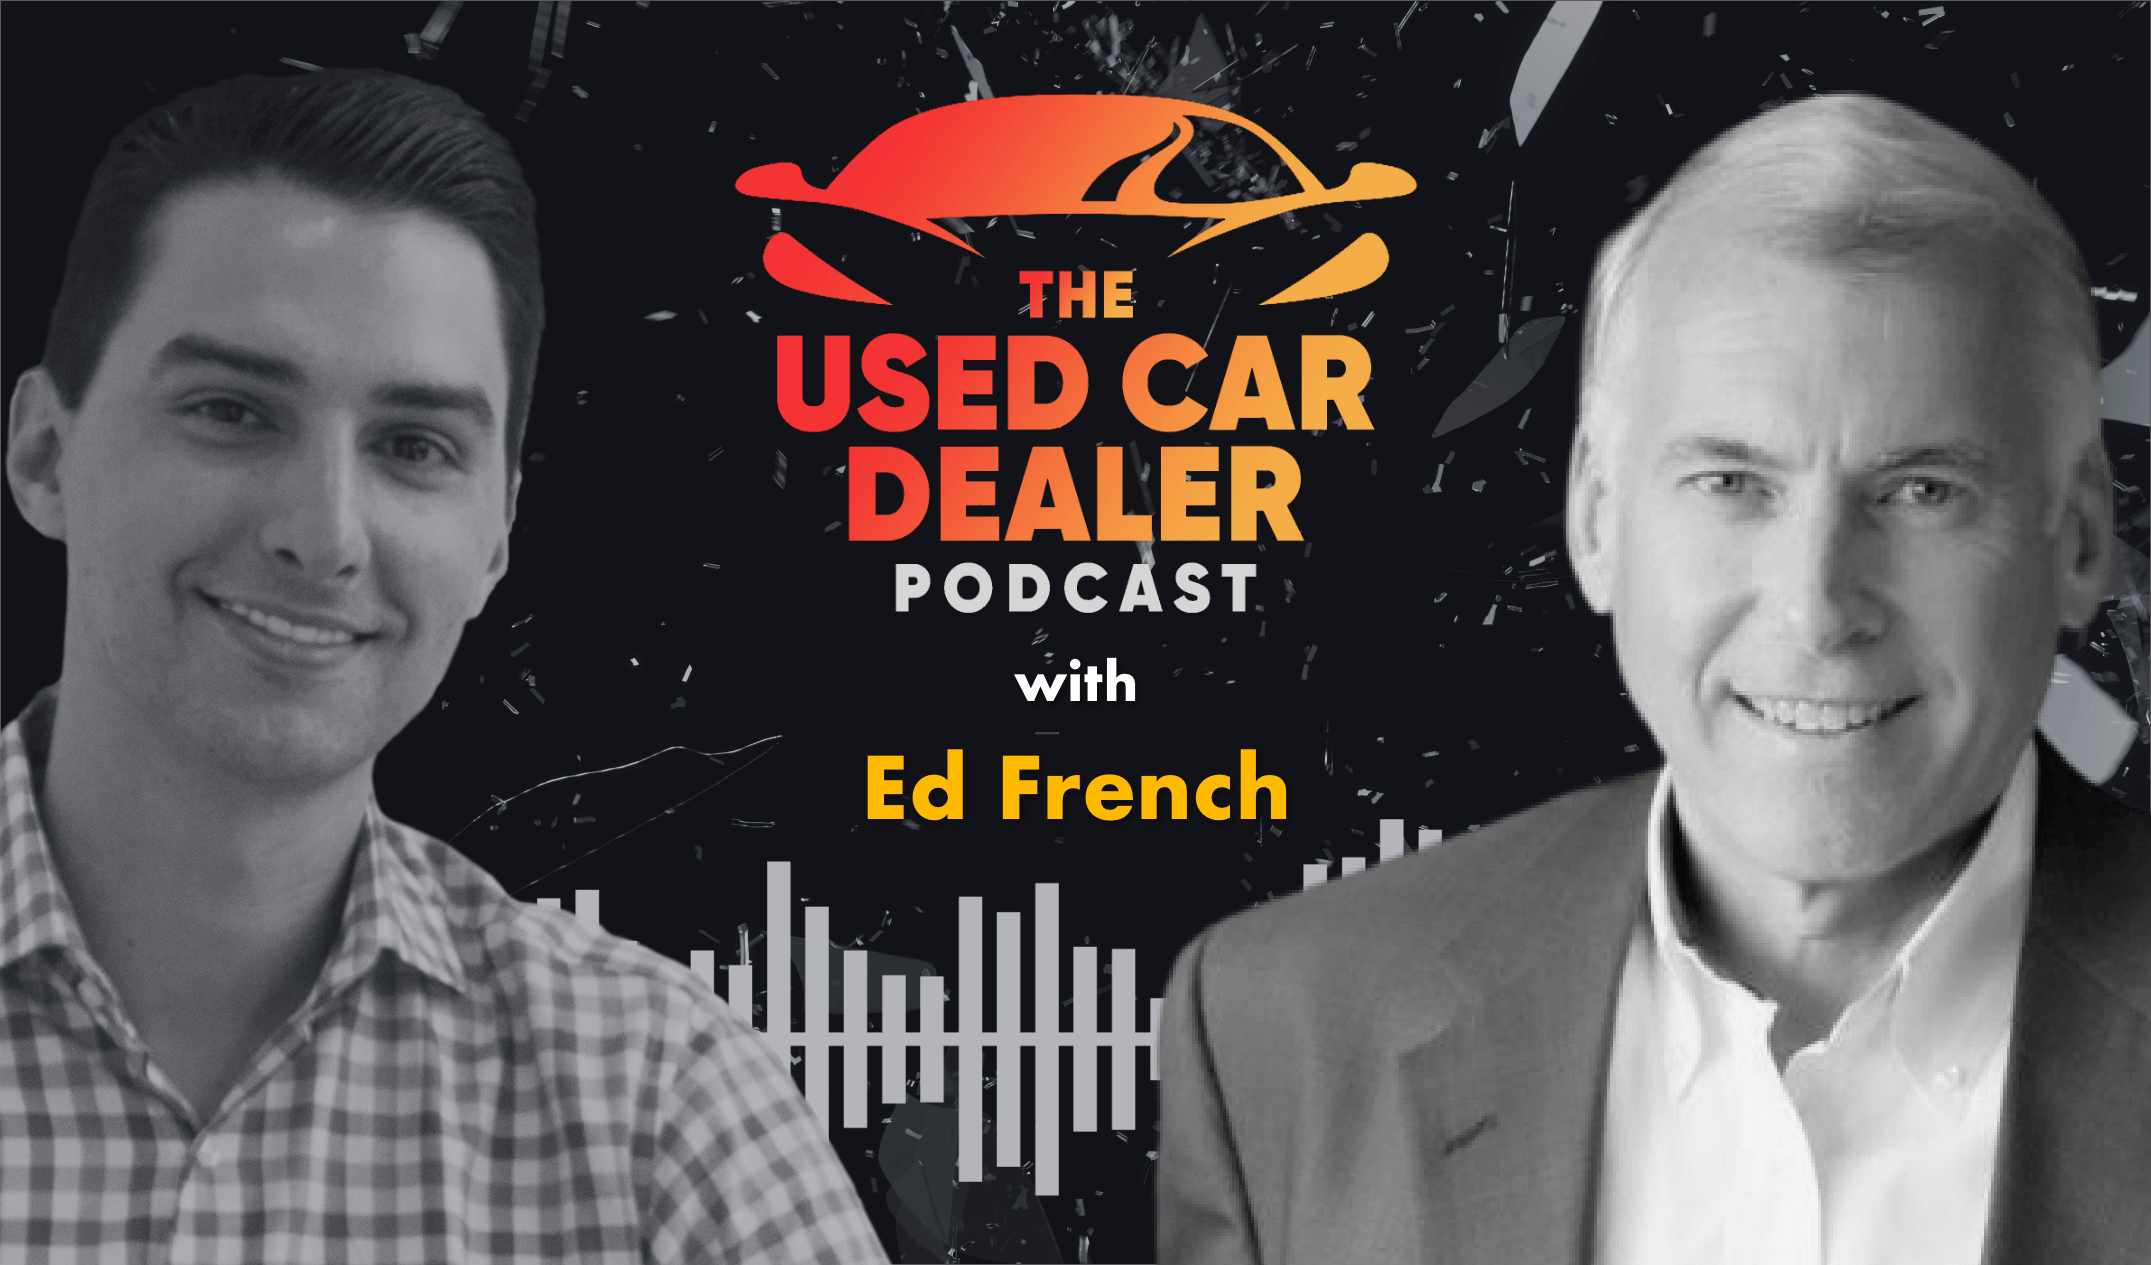 Interview with Ed French on Used Cars, Service, and Human Capital